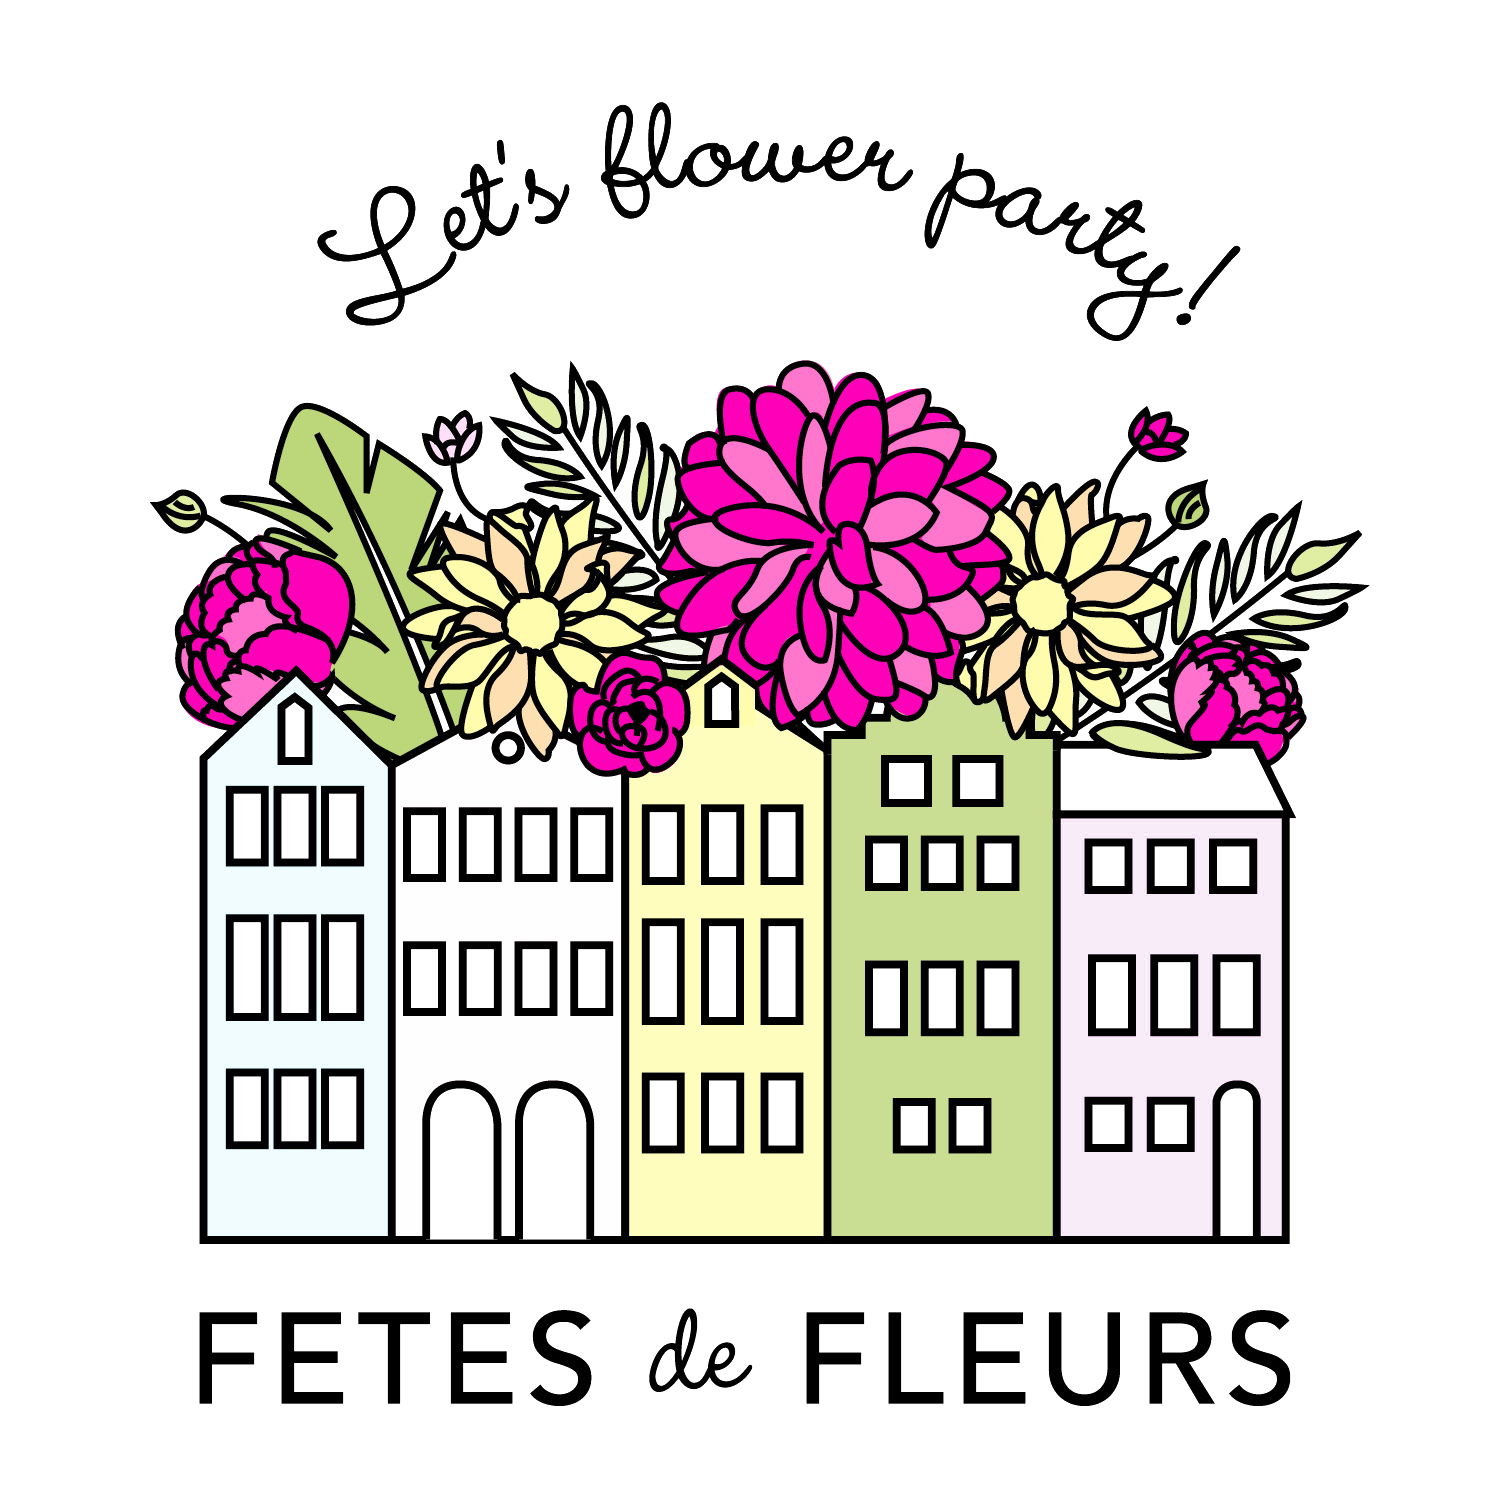 Fetes de fleurs flower parties in DC